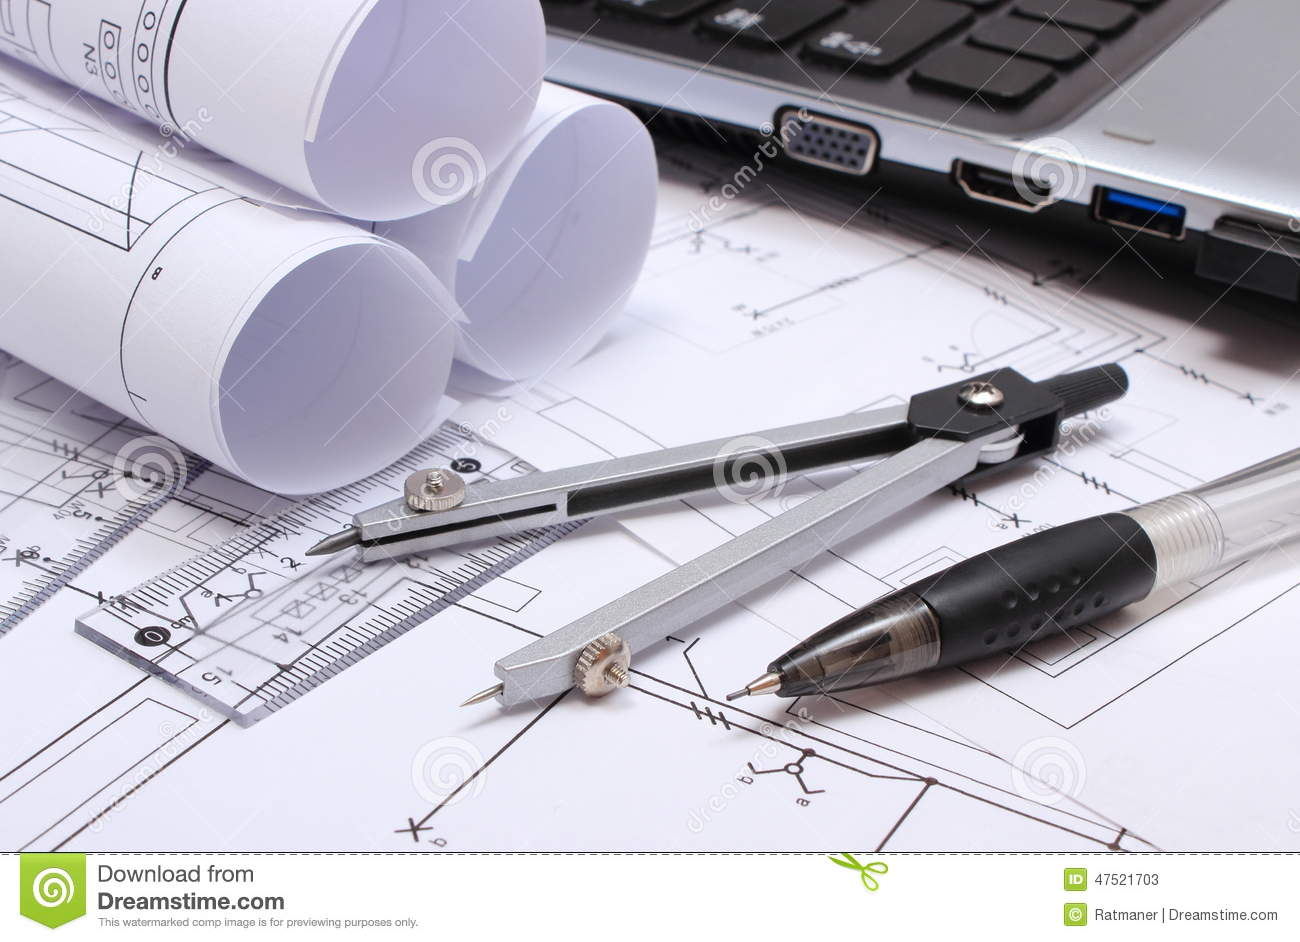 hight resolution of electrical diagrams accessories for drawing and laptop